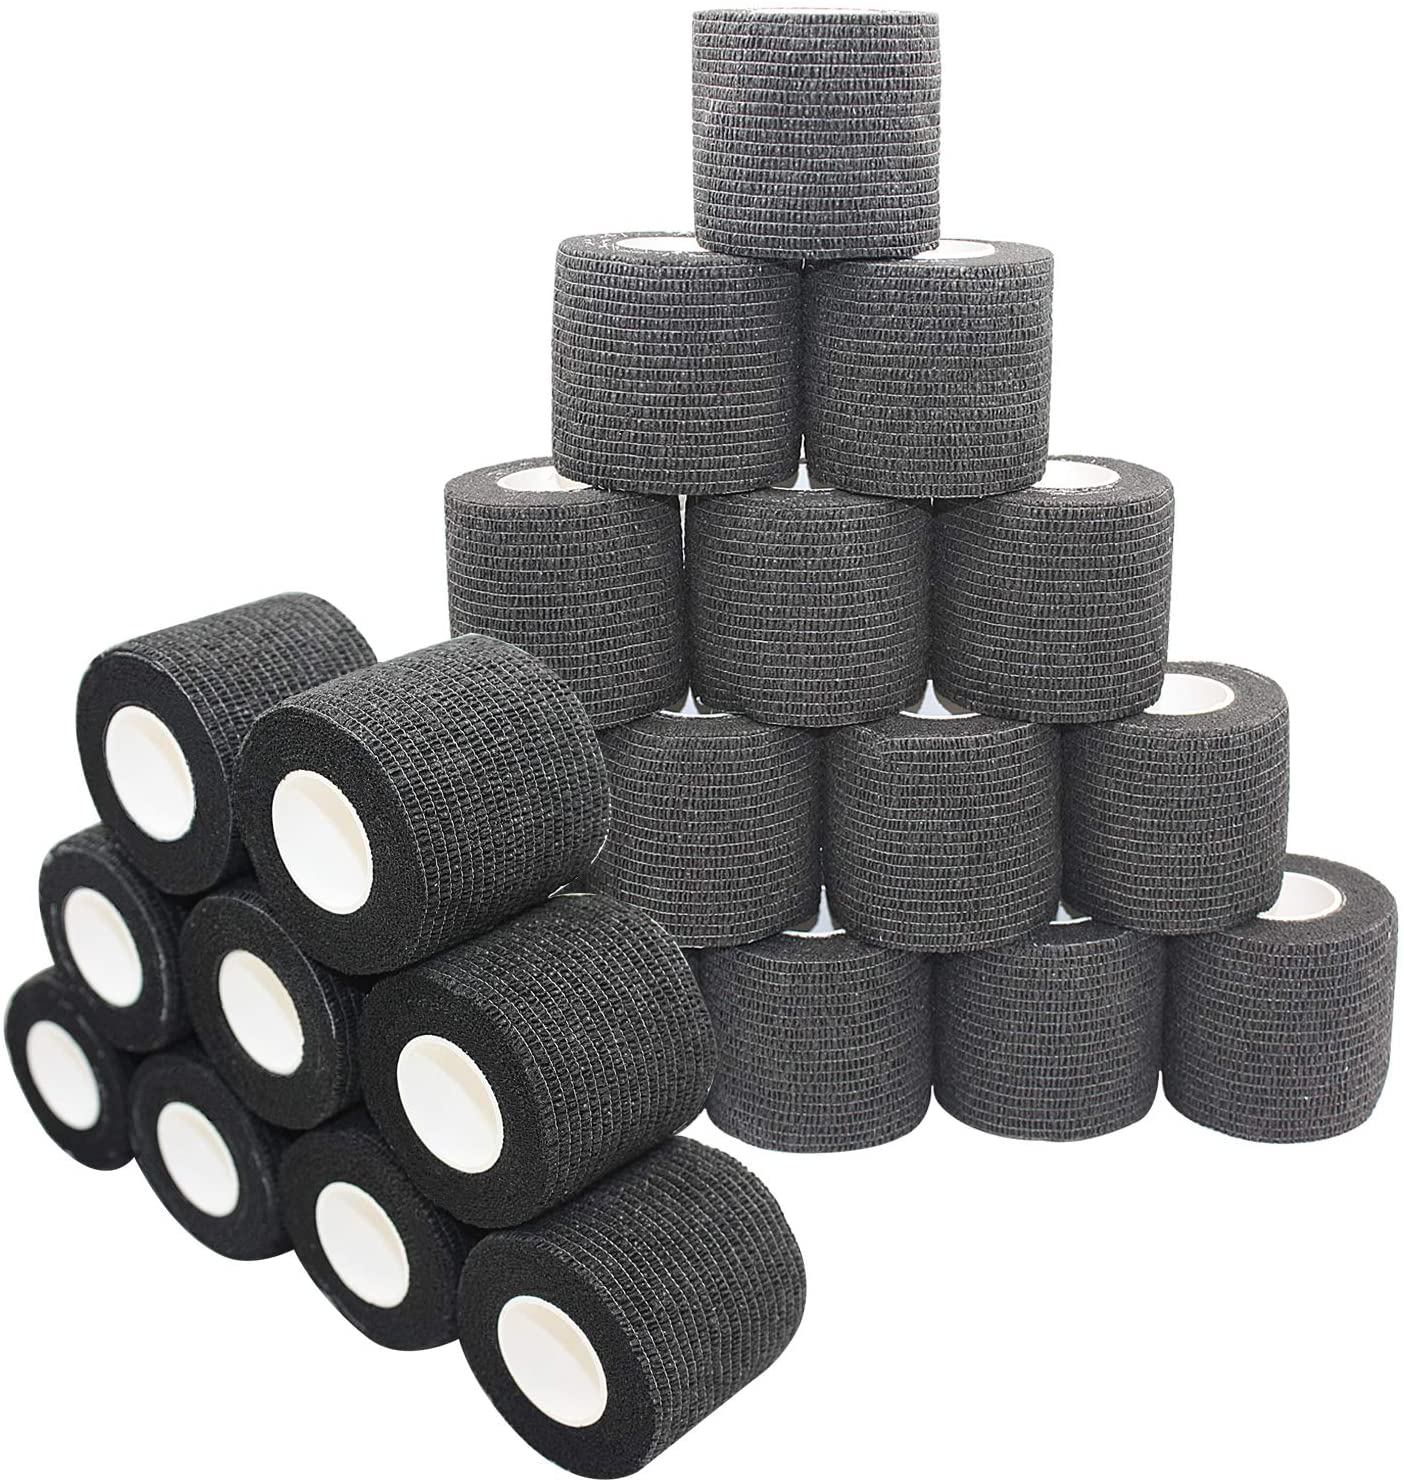 COMOmed Self Adherent Cohesive Bandage 2x5 Yards First Aid Bandages Stretch Sport Athletic Wrap Vet Tape for Wrist Ankle Sprain and Swelling,Black(24 Rolls)